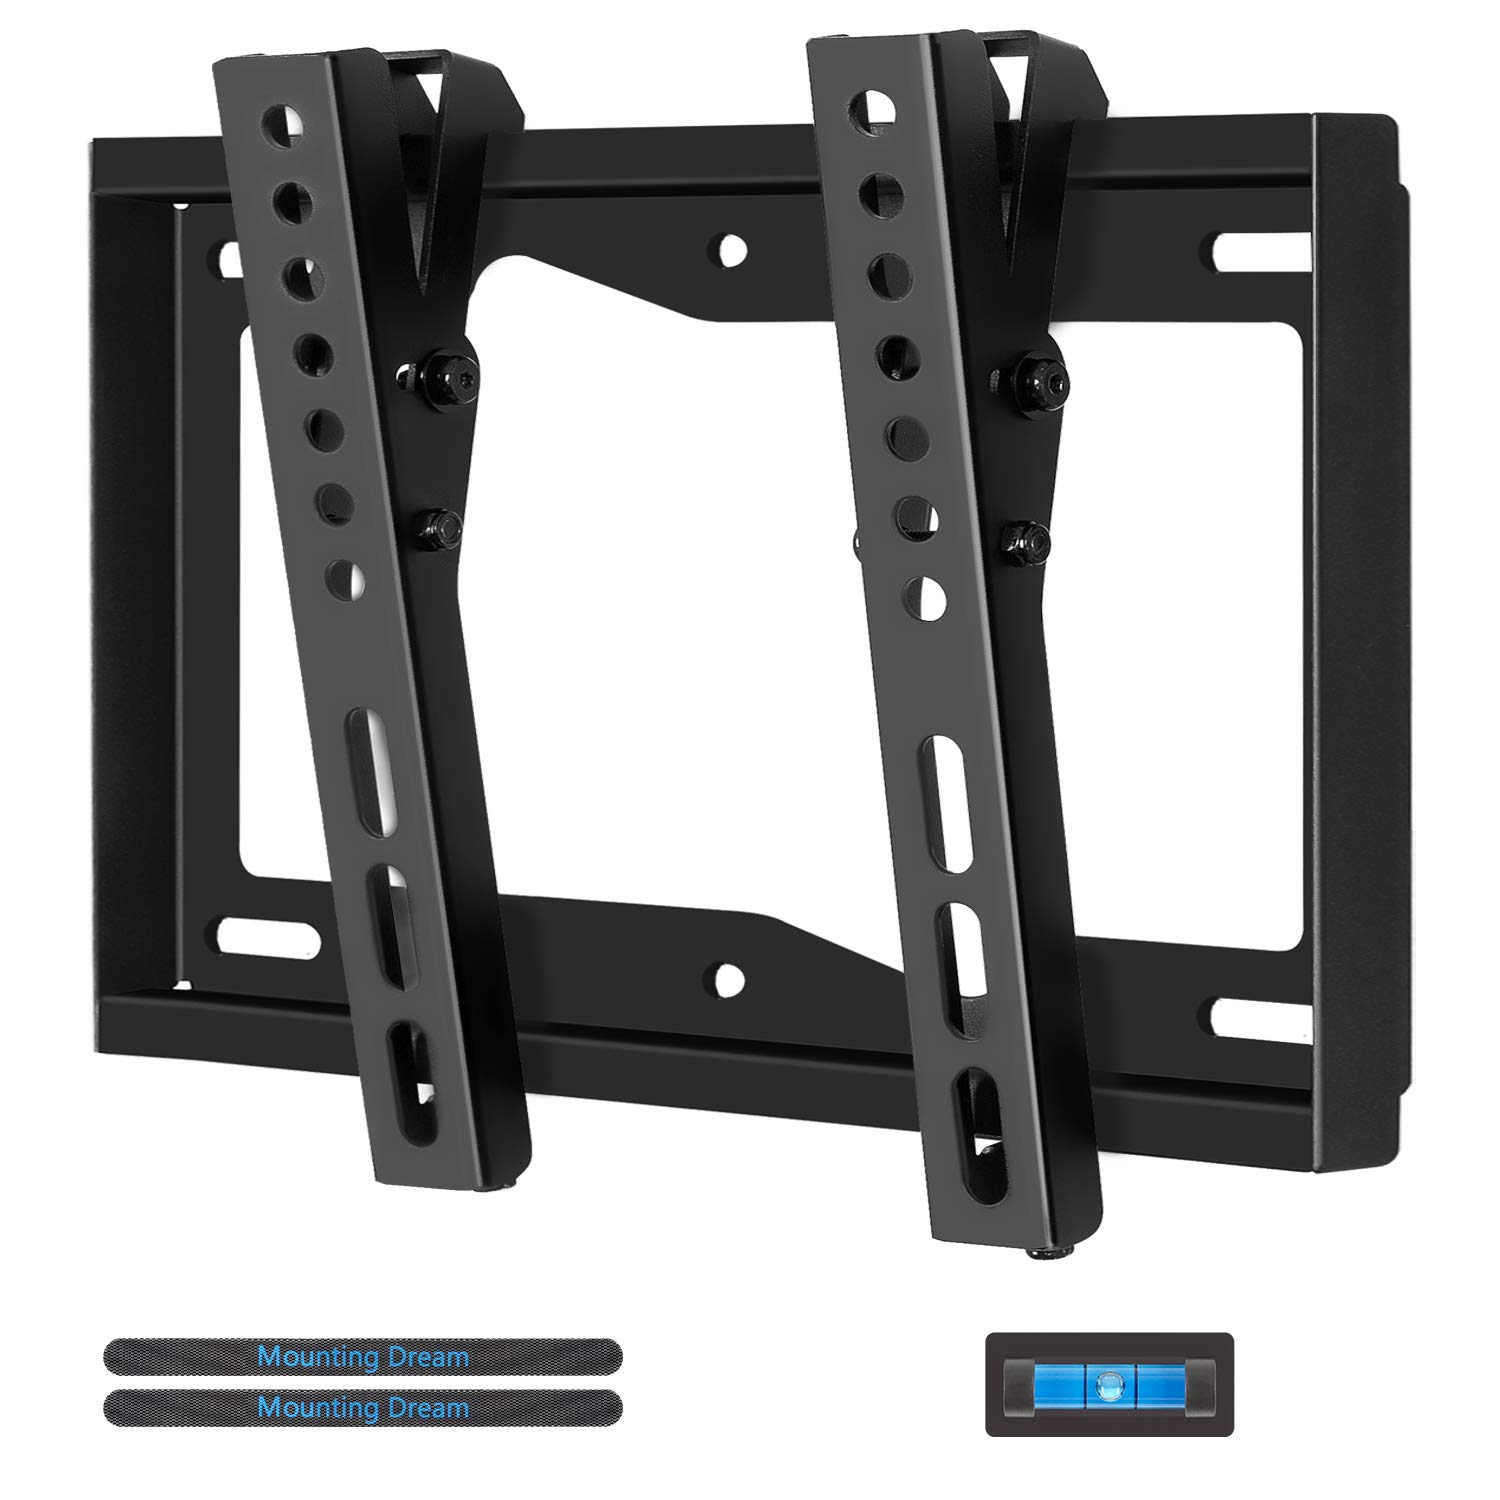 Mounting Dream MD2268-S TV Wall Mount Tilting Bracket for Most 17-42 Inch LED, LCD and Plasma TVs up to VESA 200 x 200mm and 44 LBS Loading Capacity, with Bubble Level